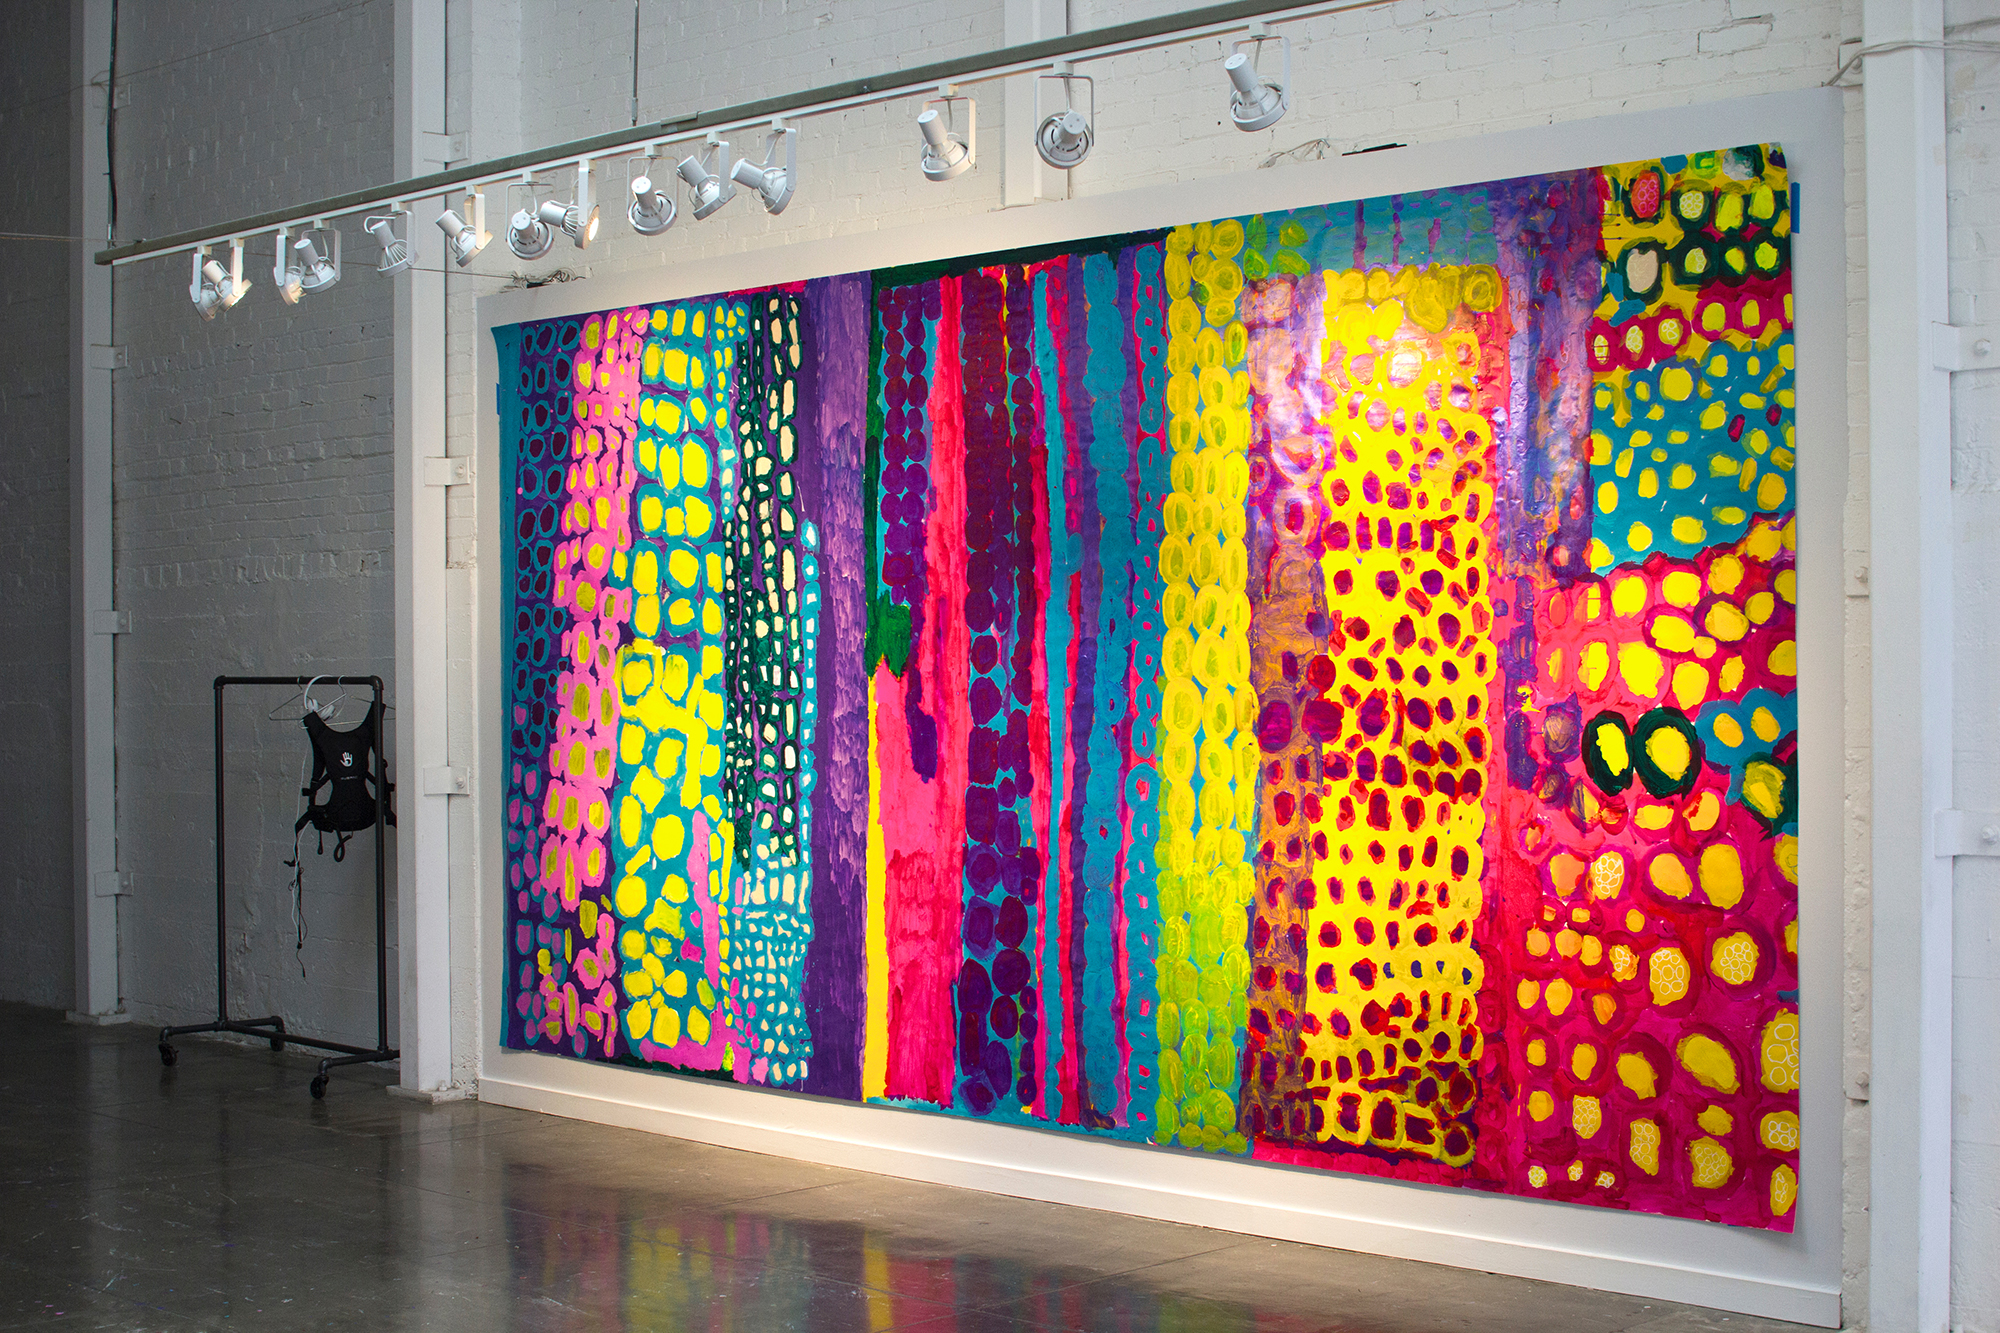 Barry Regan, Untitled, Acrylic on paper installation, 108 x 307 inches